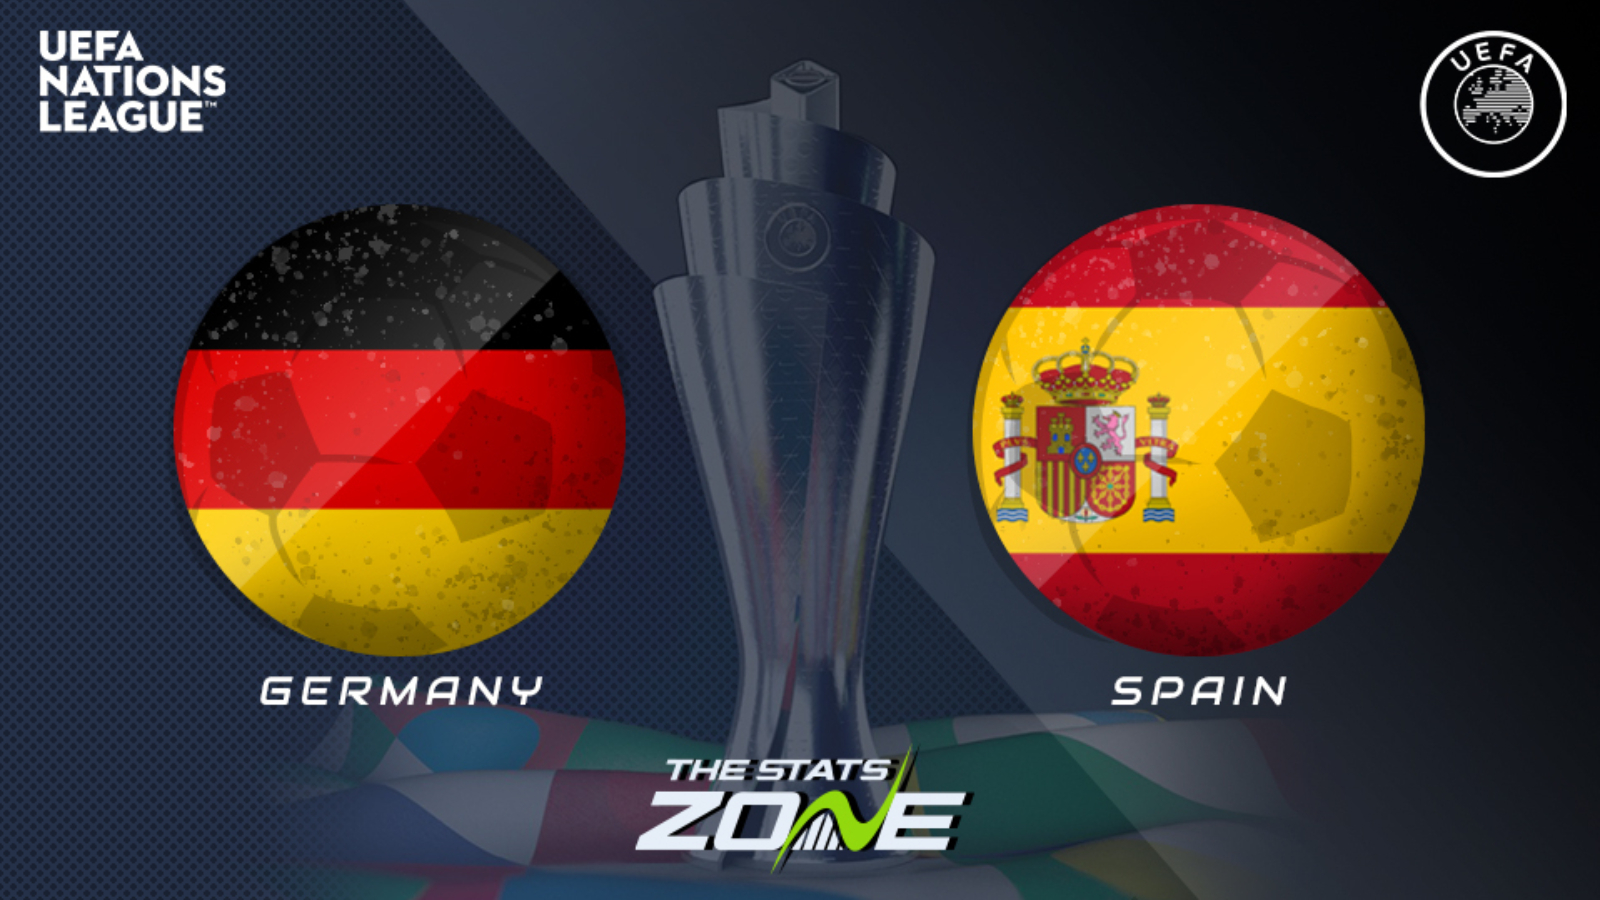 2020 21 Uefa Nations League Germany Vs Spain Preview Prediction The Stats Zone